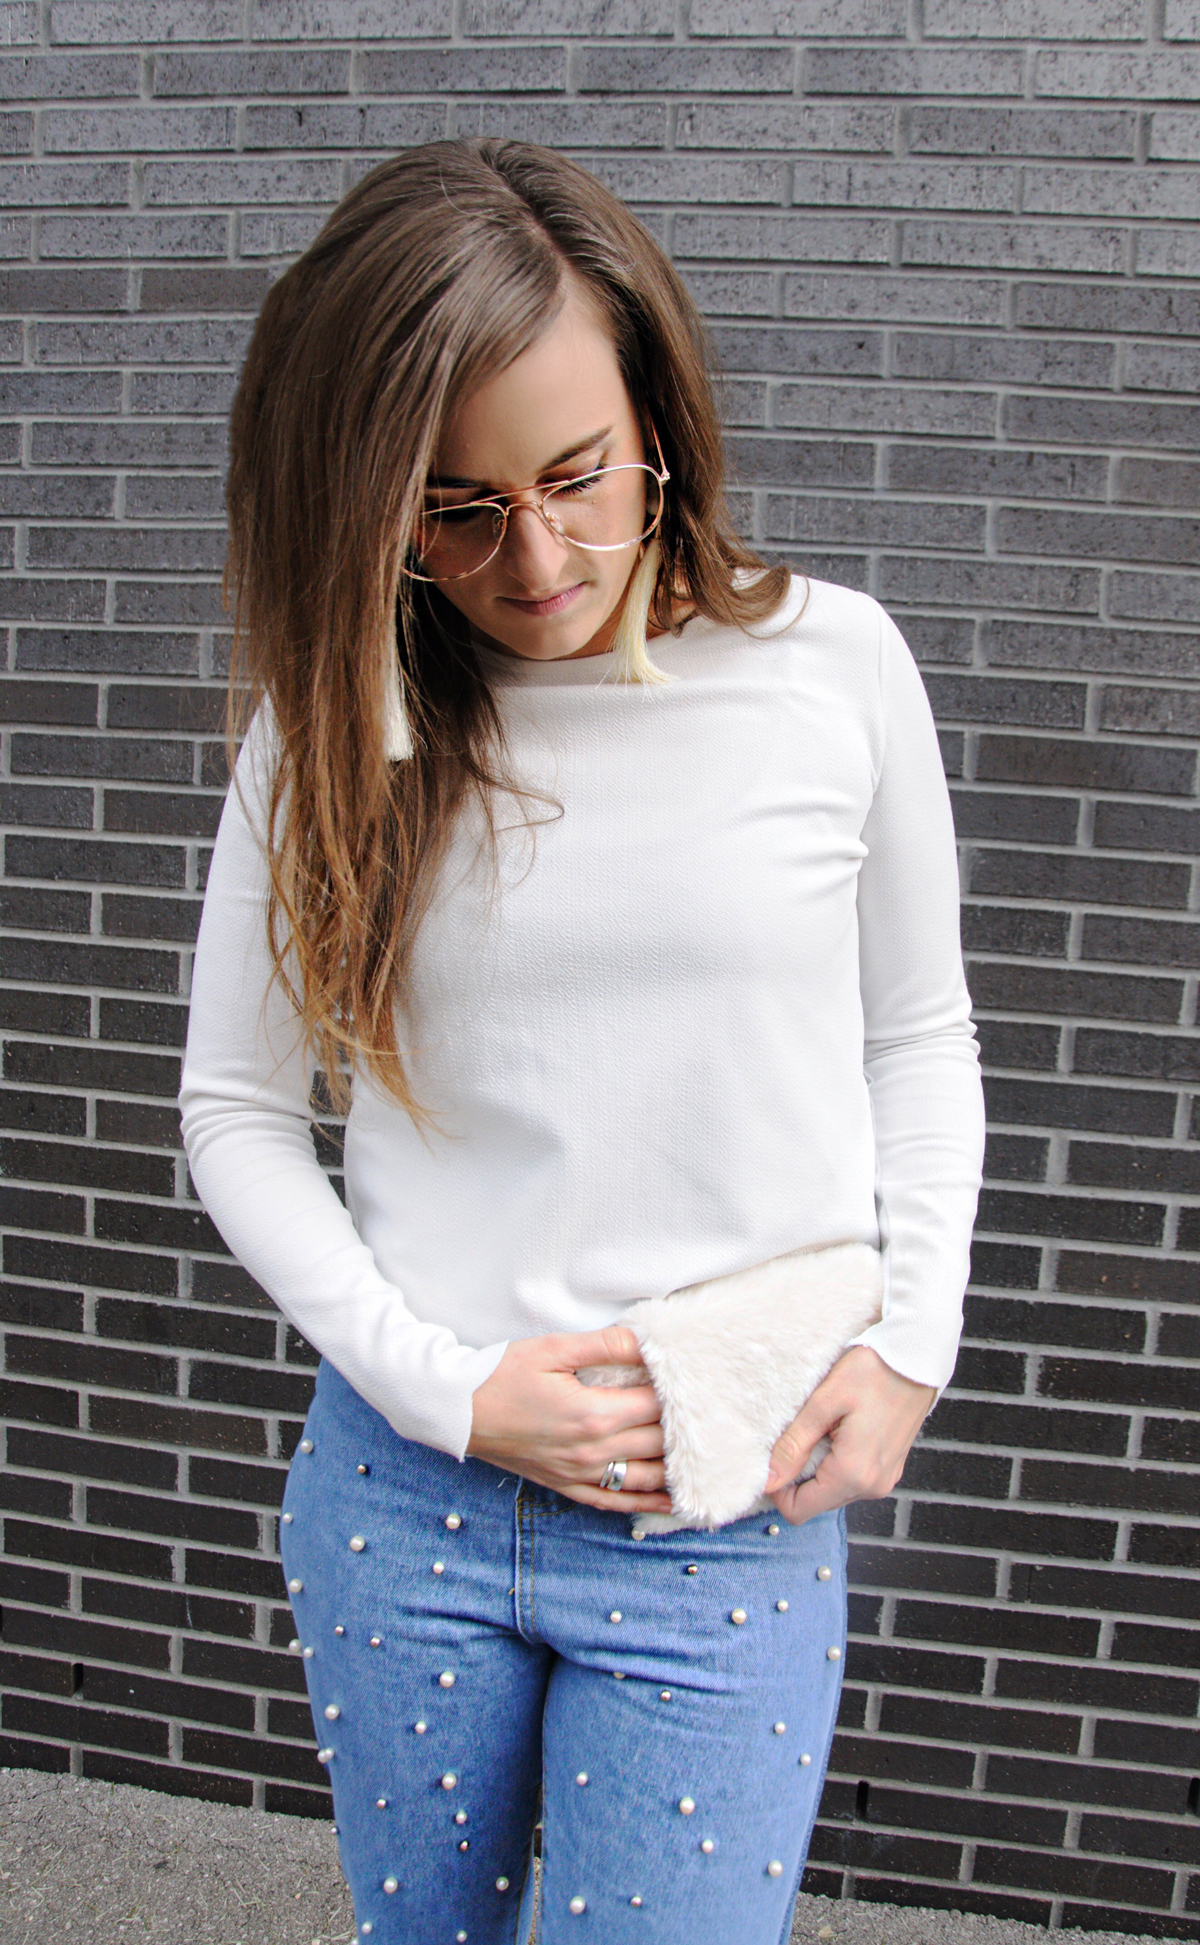 Swiss Blogger from Lucerne, Andrea Steiner give some amazing fashion tips on her blog Strawberries 'n' Champagne about fanny packs and how to wear it.